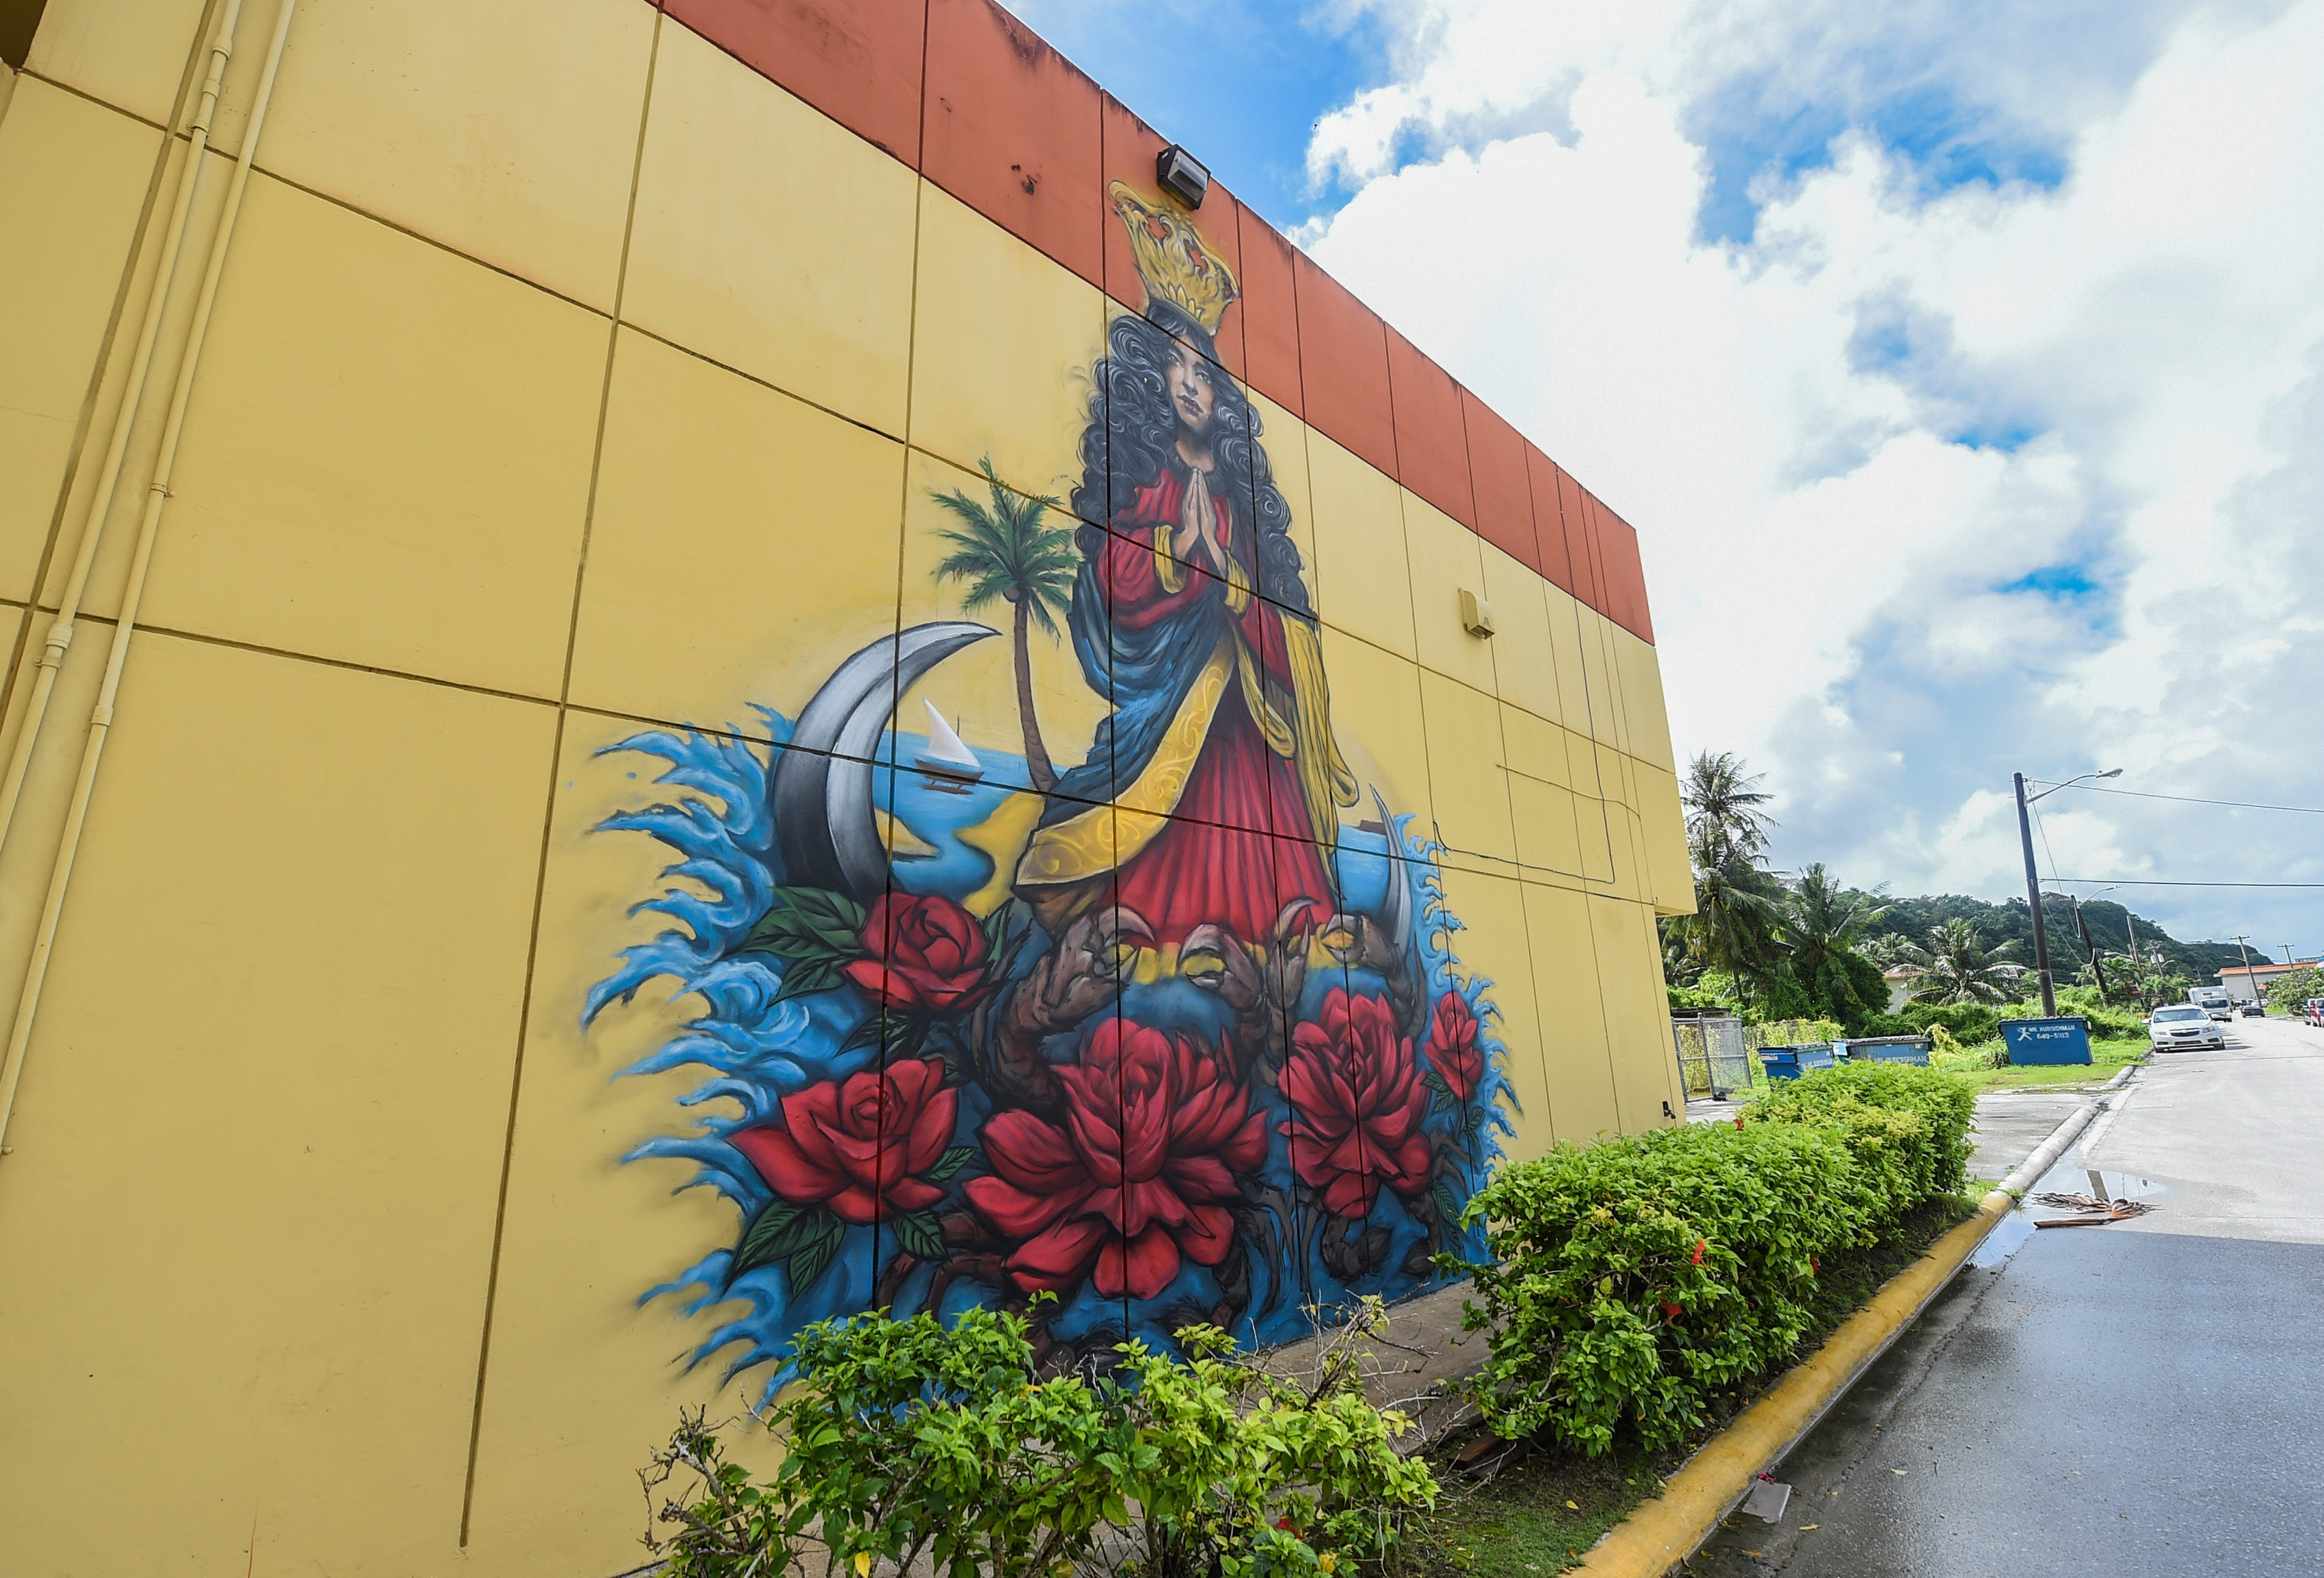 A mural of Santa Marian Kamalen has been completed by artist Kenny Malone in Hagåtña, Dec. 7, 2020. The mural, which is located on the side of Ada Plaza Center's Bldg. B, was commissioned by Crowns CEO, Randy Alcantara.